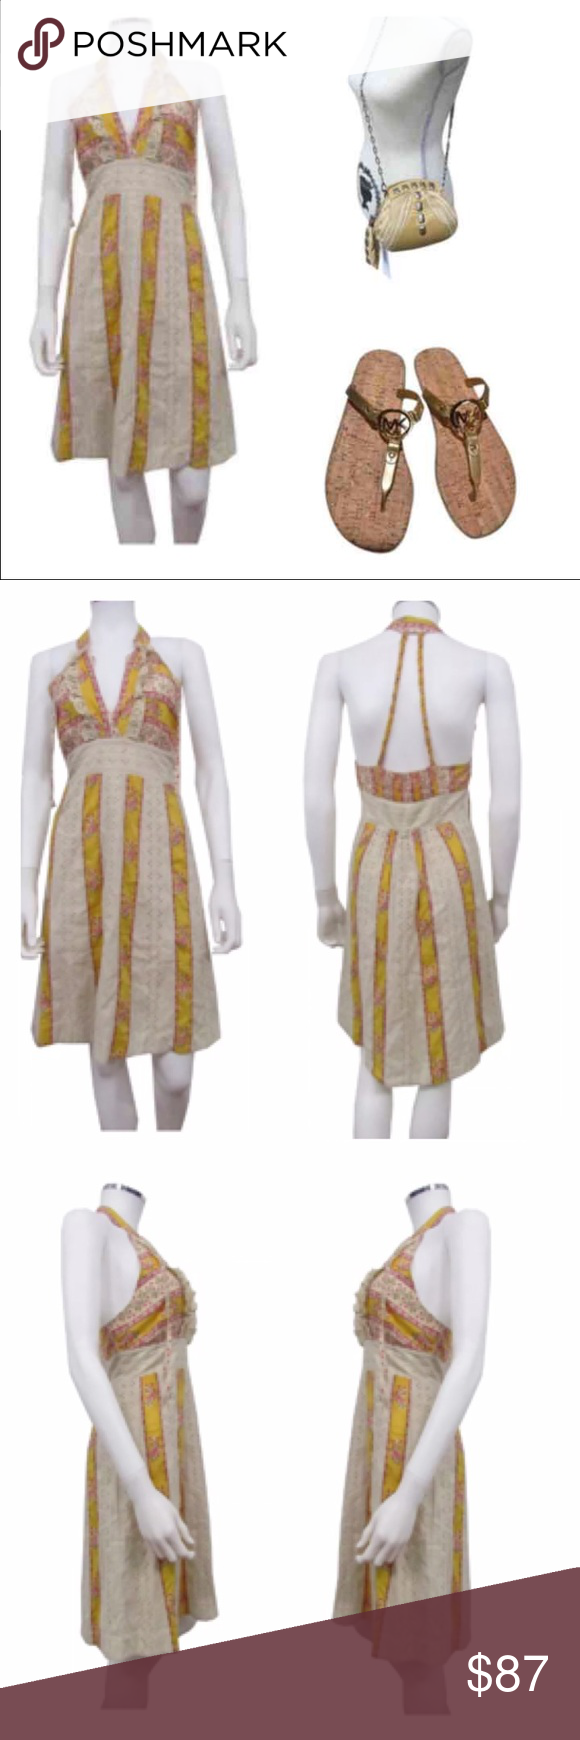 """Free People Braided Floral Halter Dress 🌟NEW without Tags 🌟MSRP: $168.00 🌟Size: 6  👗Halter dress cut with a v-neck  👗Eyelet floral  👗Delicate braided straps  👗Smocked back 👗Above knee  👗100% cotton  👗Across chest: 14.5"""" 👗Waist: 13.25"""" 👗Hip: 20.5"""" 👗Length: 37.25""""  🗯MK NWT GOLD LOGO CHARM JELLY FLIP FLOP SANDALS: See my other listing.   *🗯JUST CAVALLI NWT POCHETTE: See my other listing.   PRICE is currently FIRM Free People Dresses Mini"""